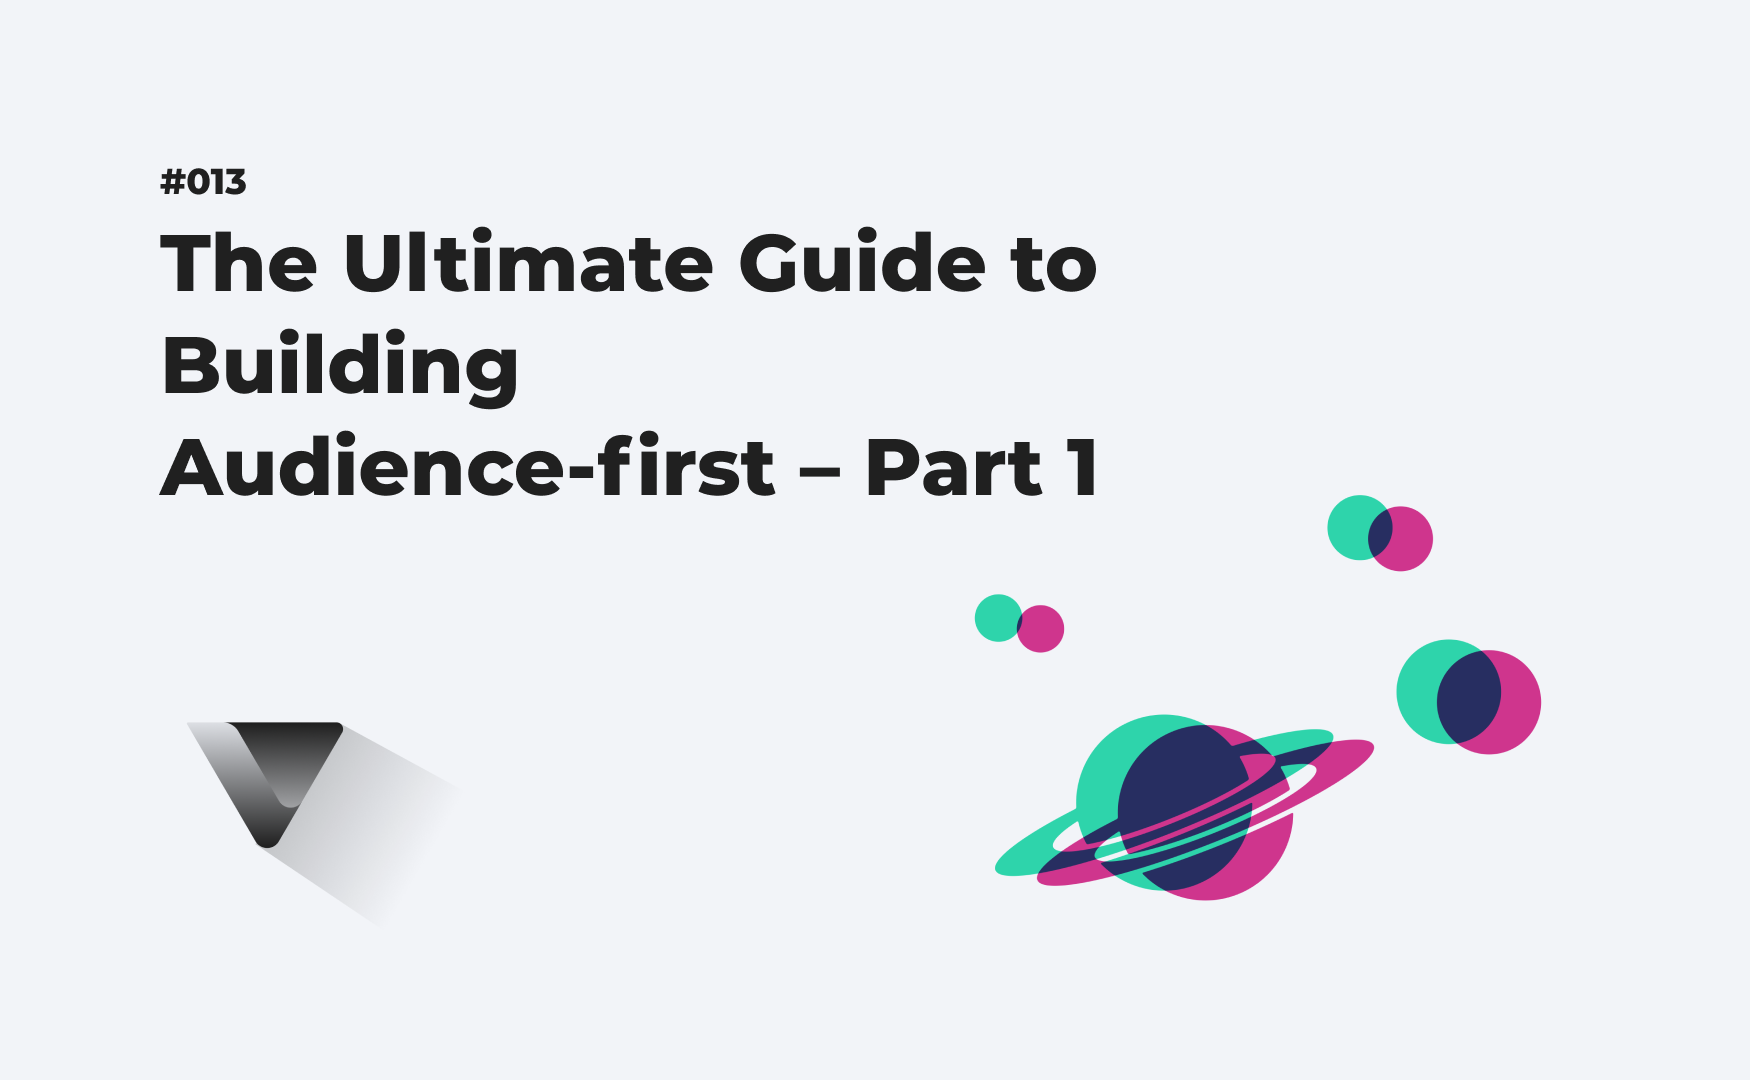 The Ultimate Guide to Building Audience-first – Part 1